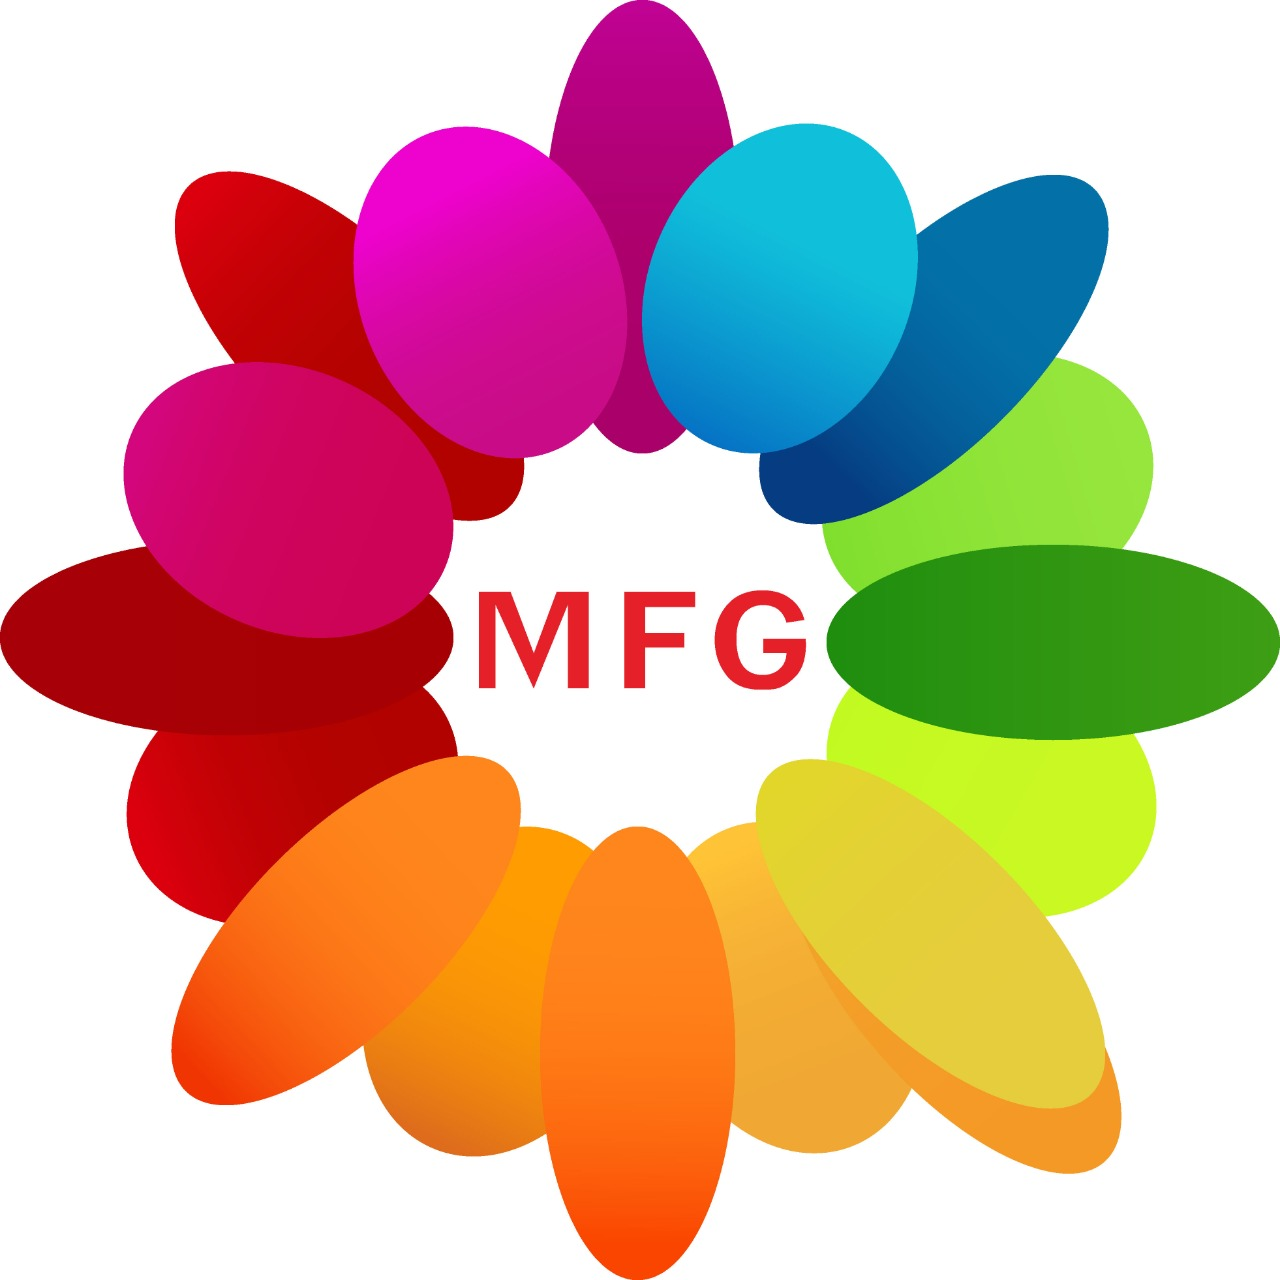 Bunch of lavender orchids with white roses with box of 1 kg soan papdi sweets